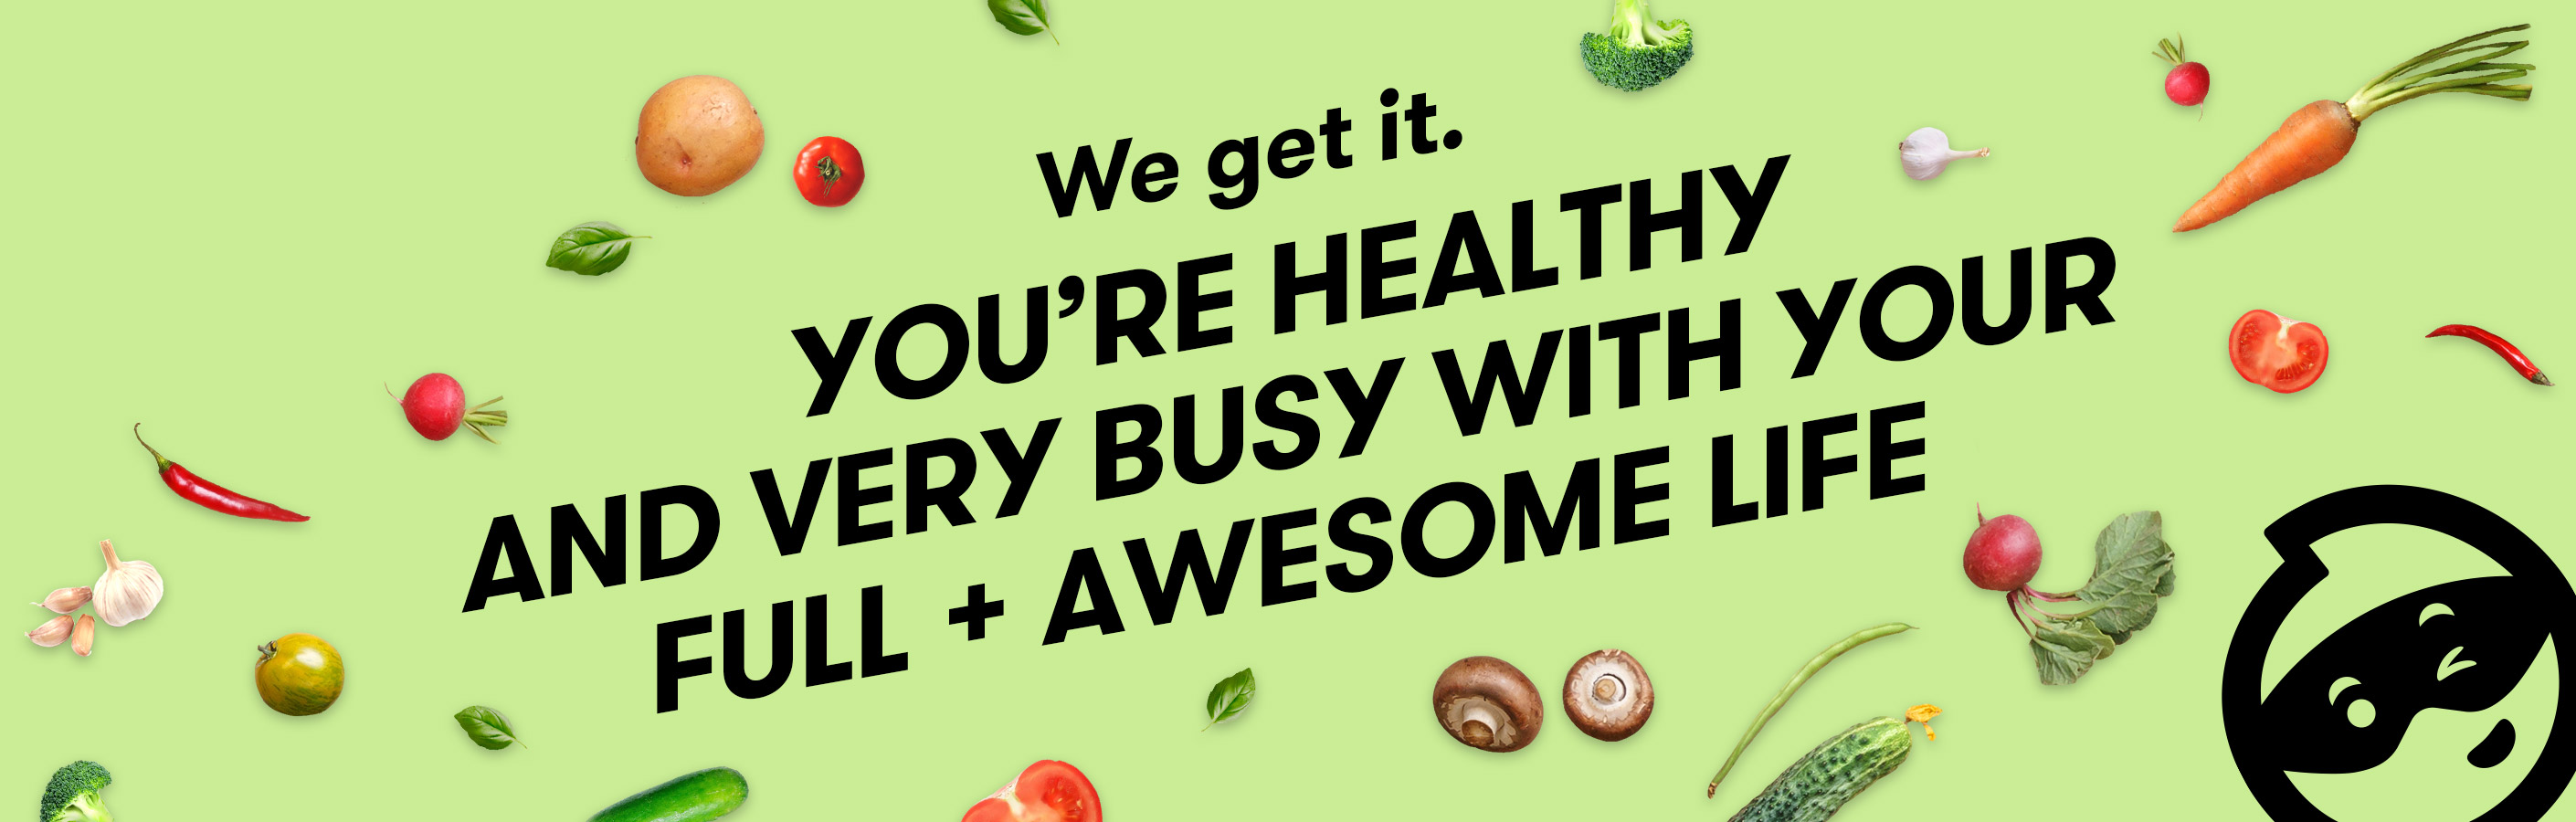 We get it. You're healthy and very busy with your full and awesome life